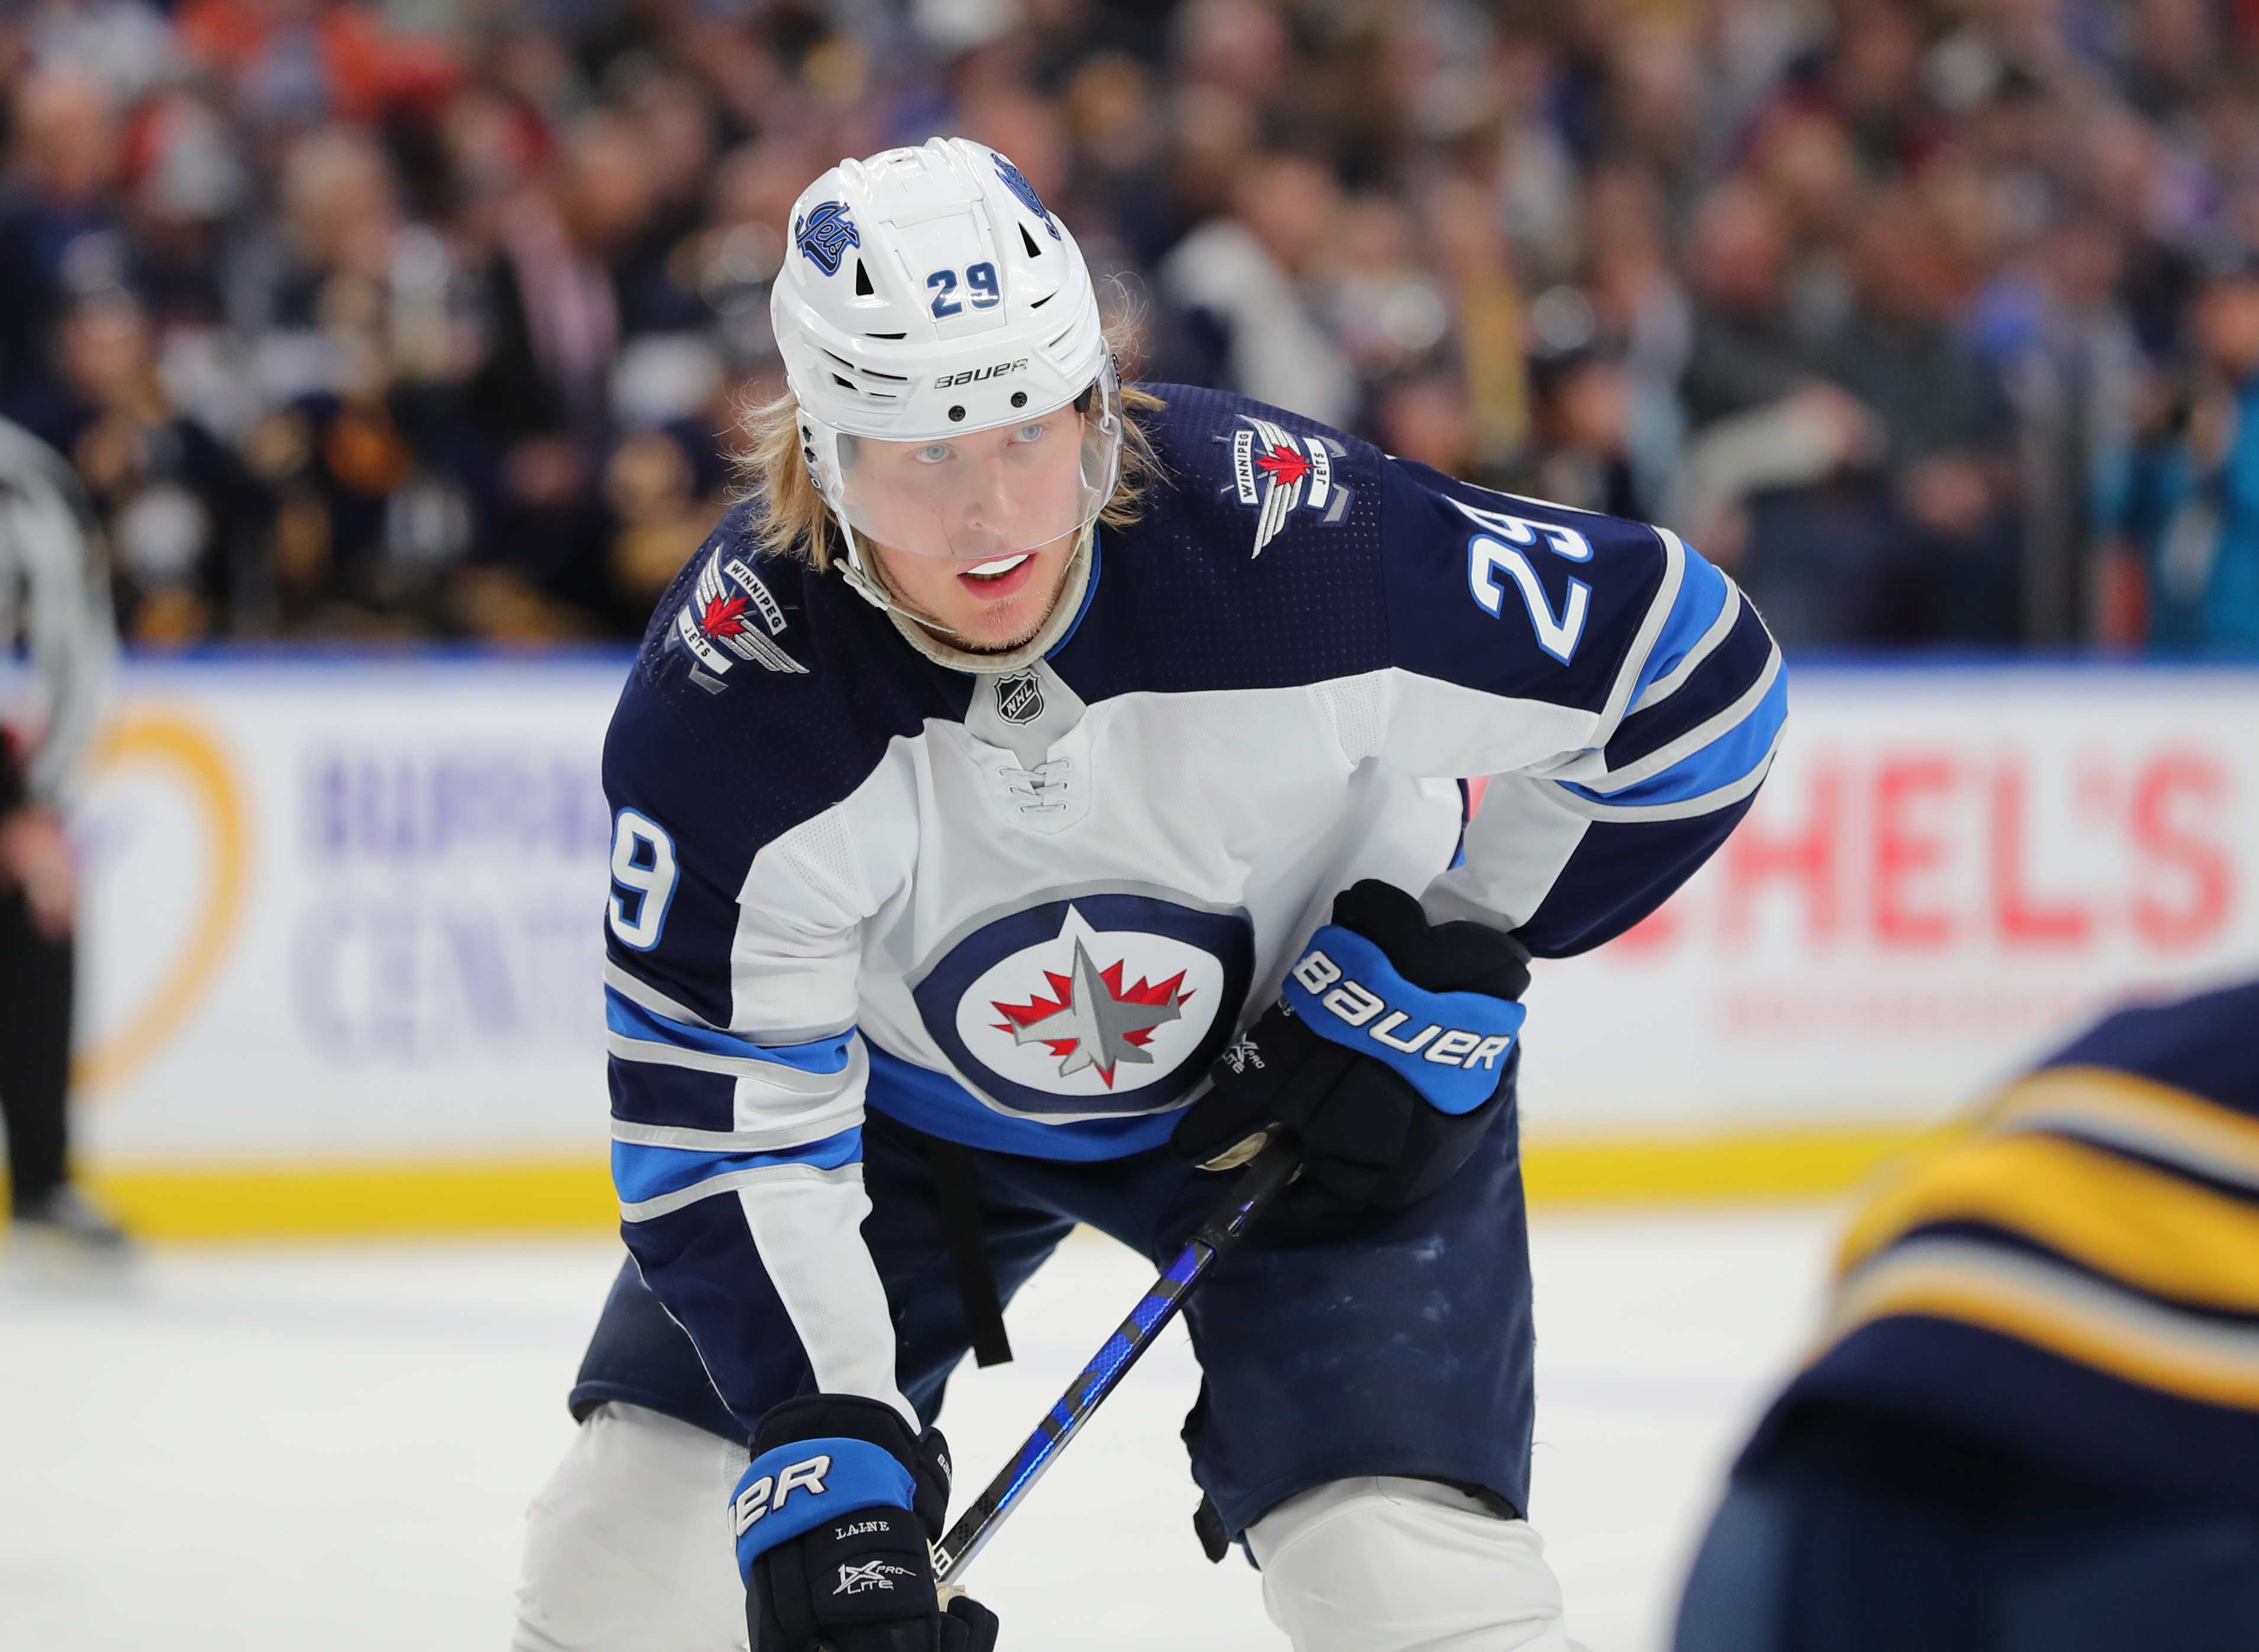 BUFFALO, NY - FEBRUARY 23: Patrik Laine #29 of the Winnipeg Jets during a game against the Buffalo Sabres at KeyBank Center on February 23, 2020 in Buffalo, New York.